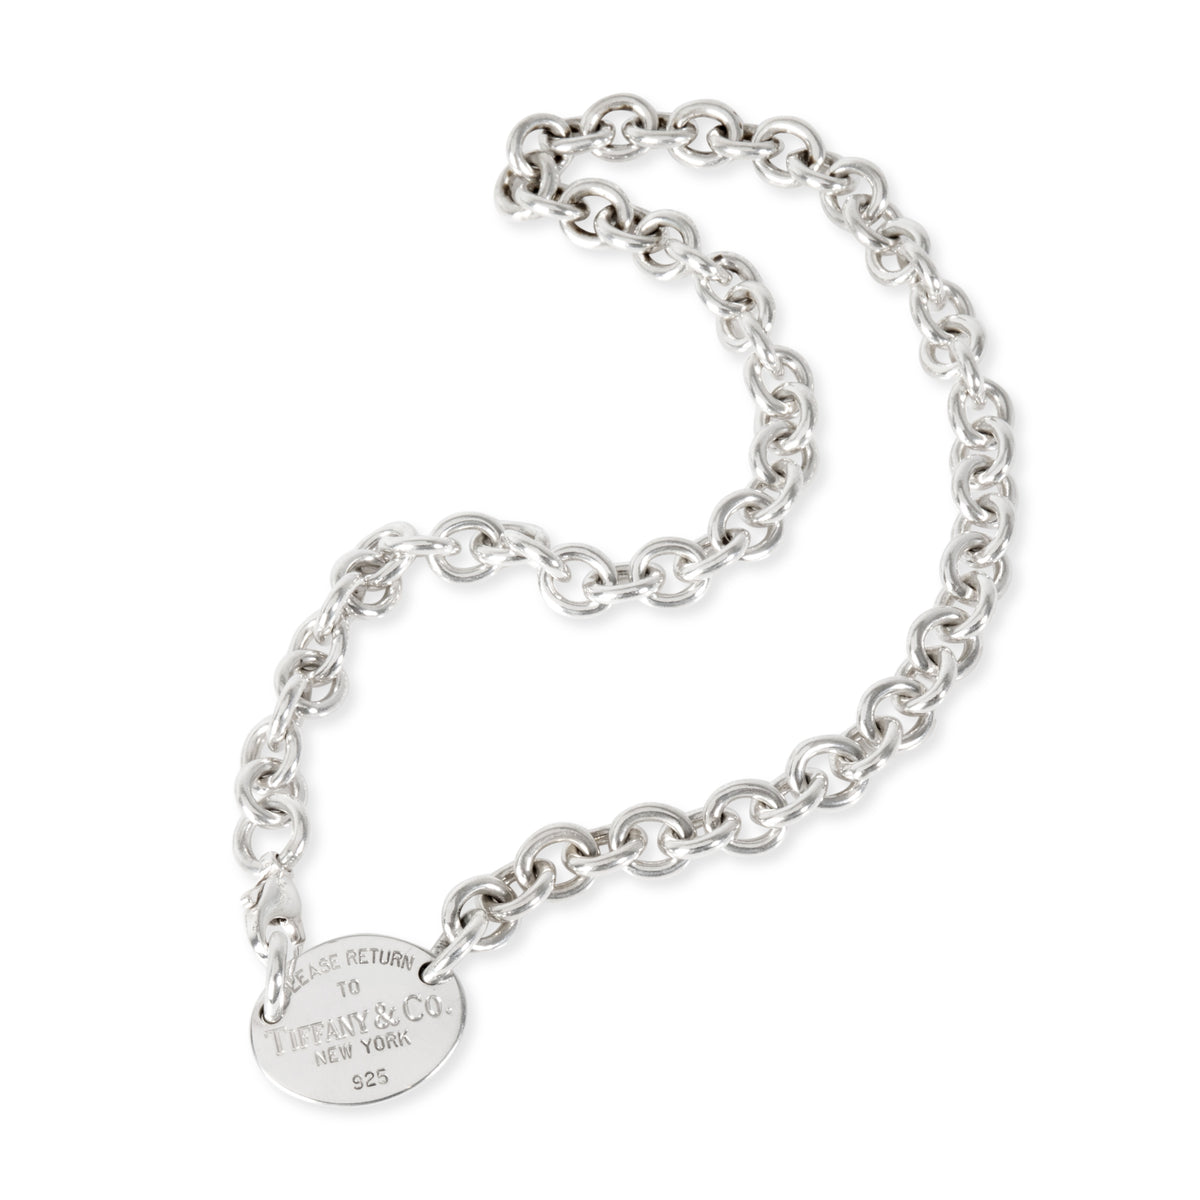 Tiffany & Co. Return to Tiffany Oval Tag Necklace in  Sterling Silver